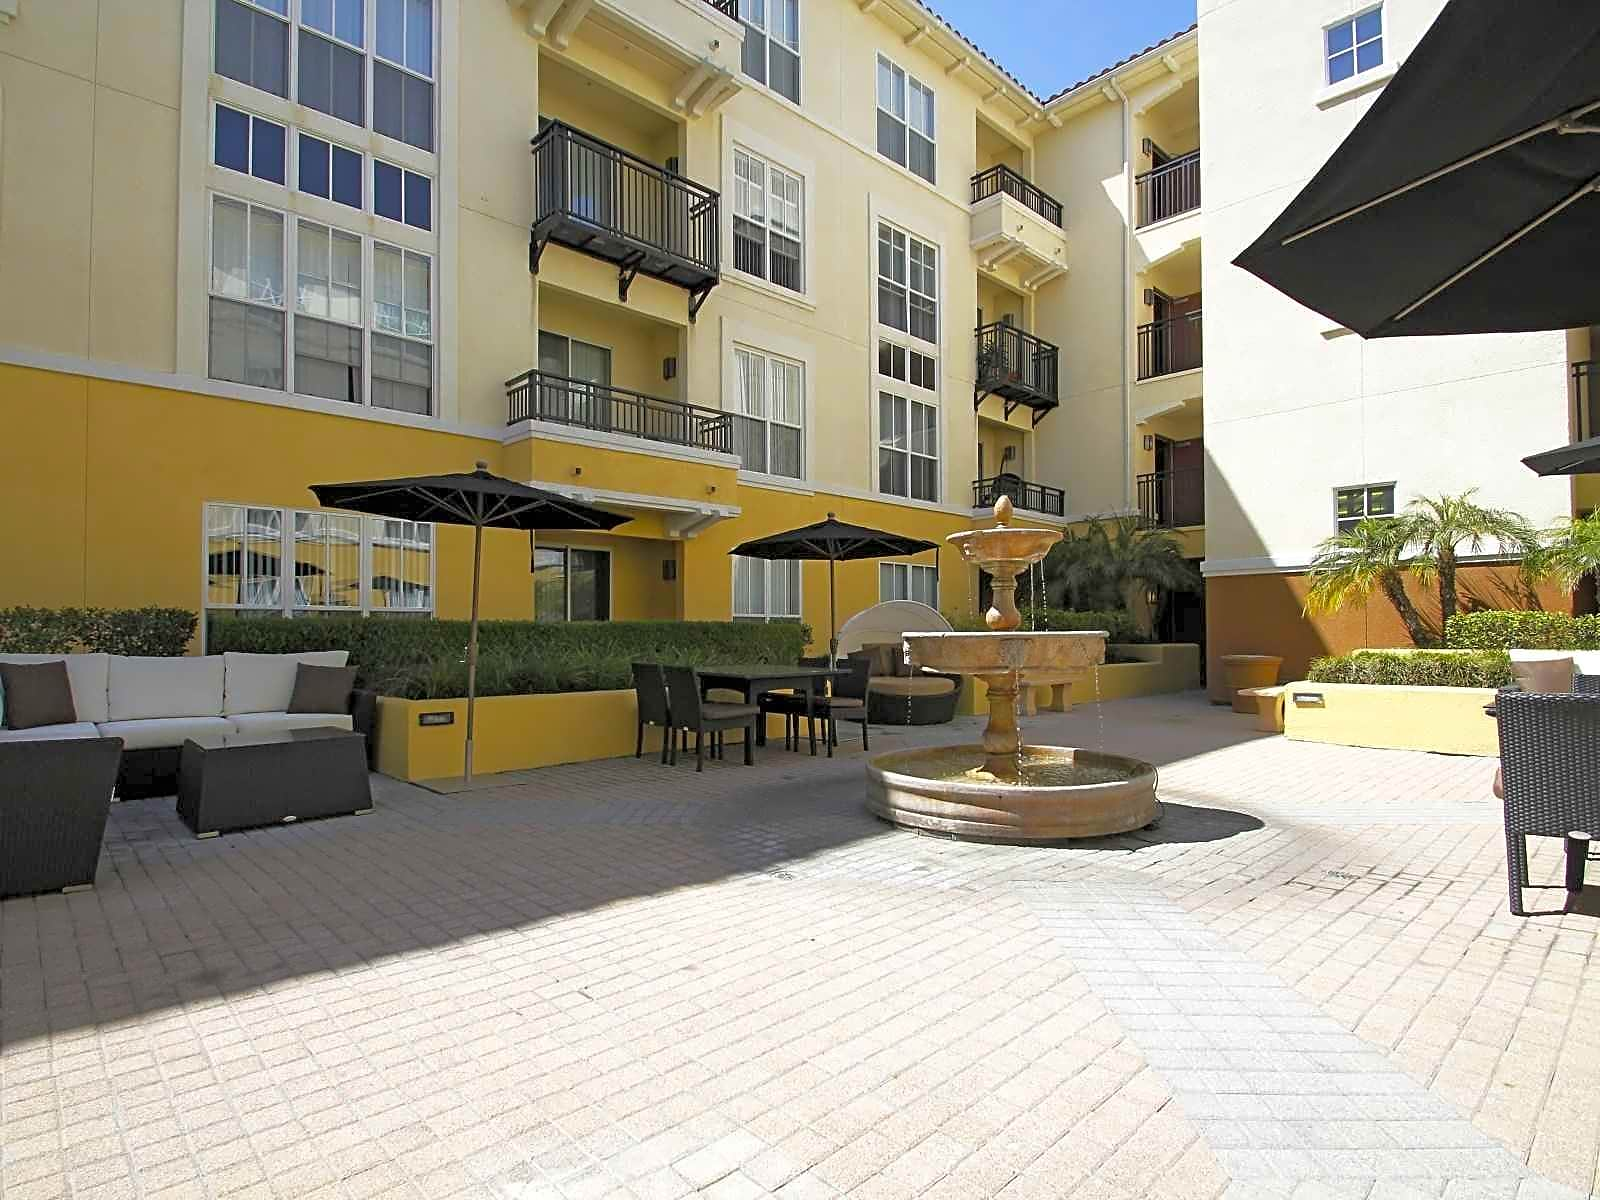 Apartments And Houses For Rent In Pasadena